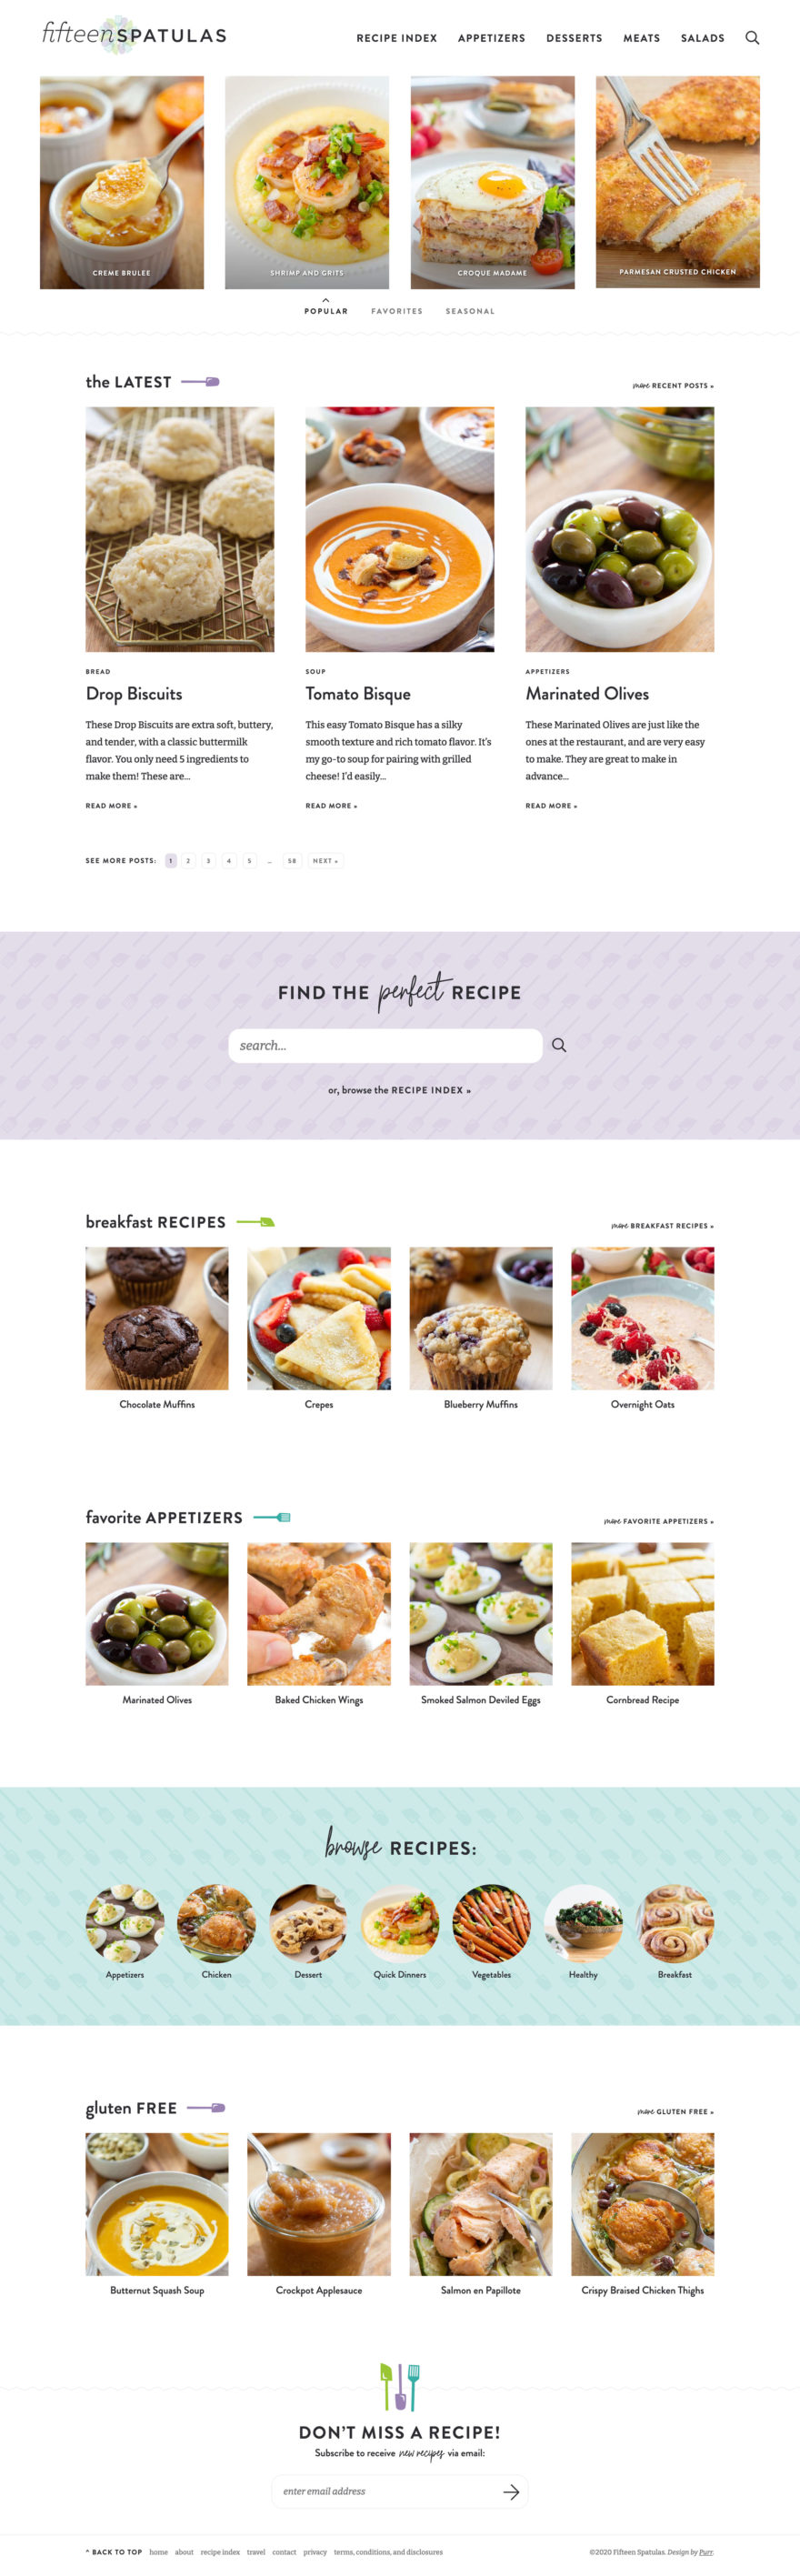 Fifteen Spatulas homepage screenshot